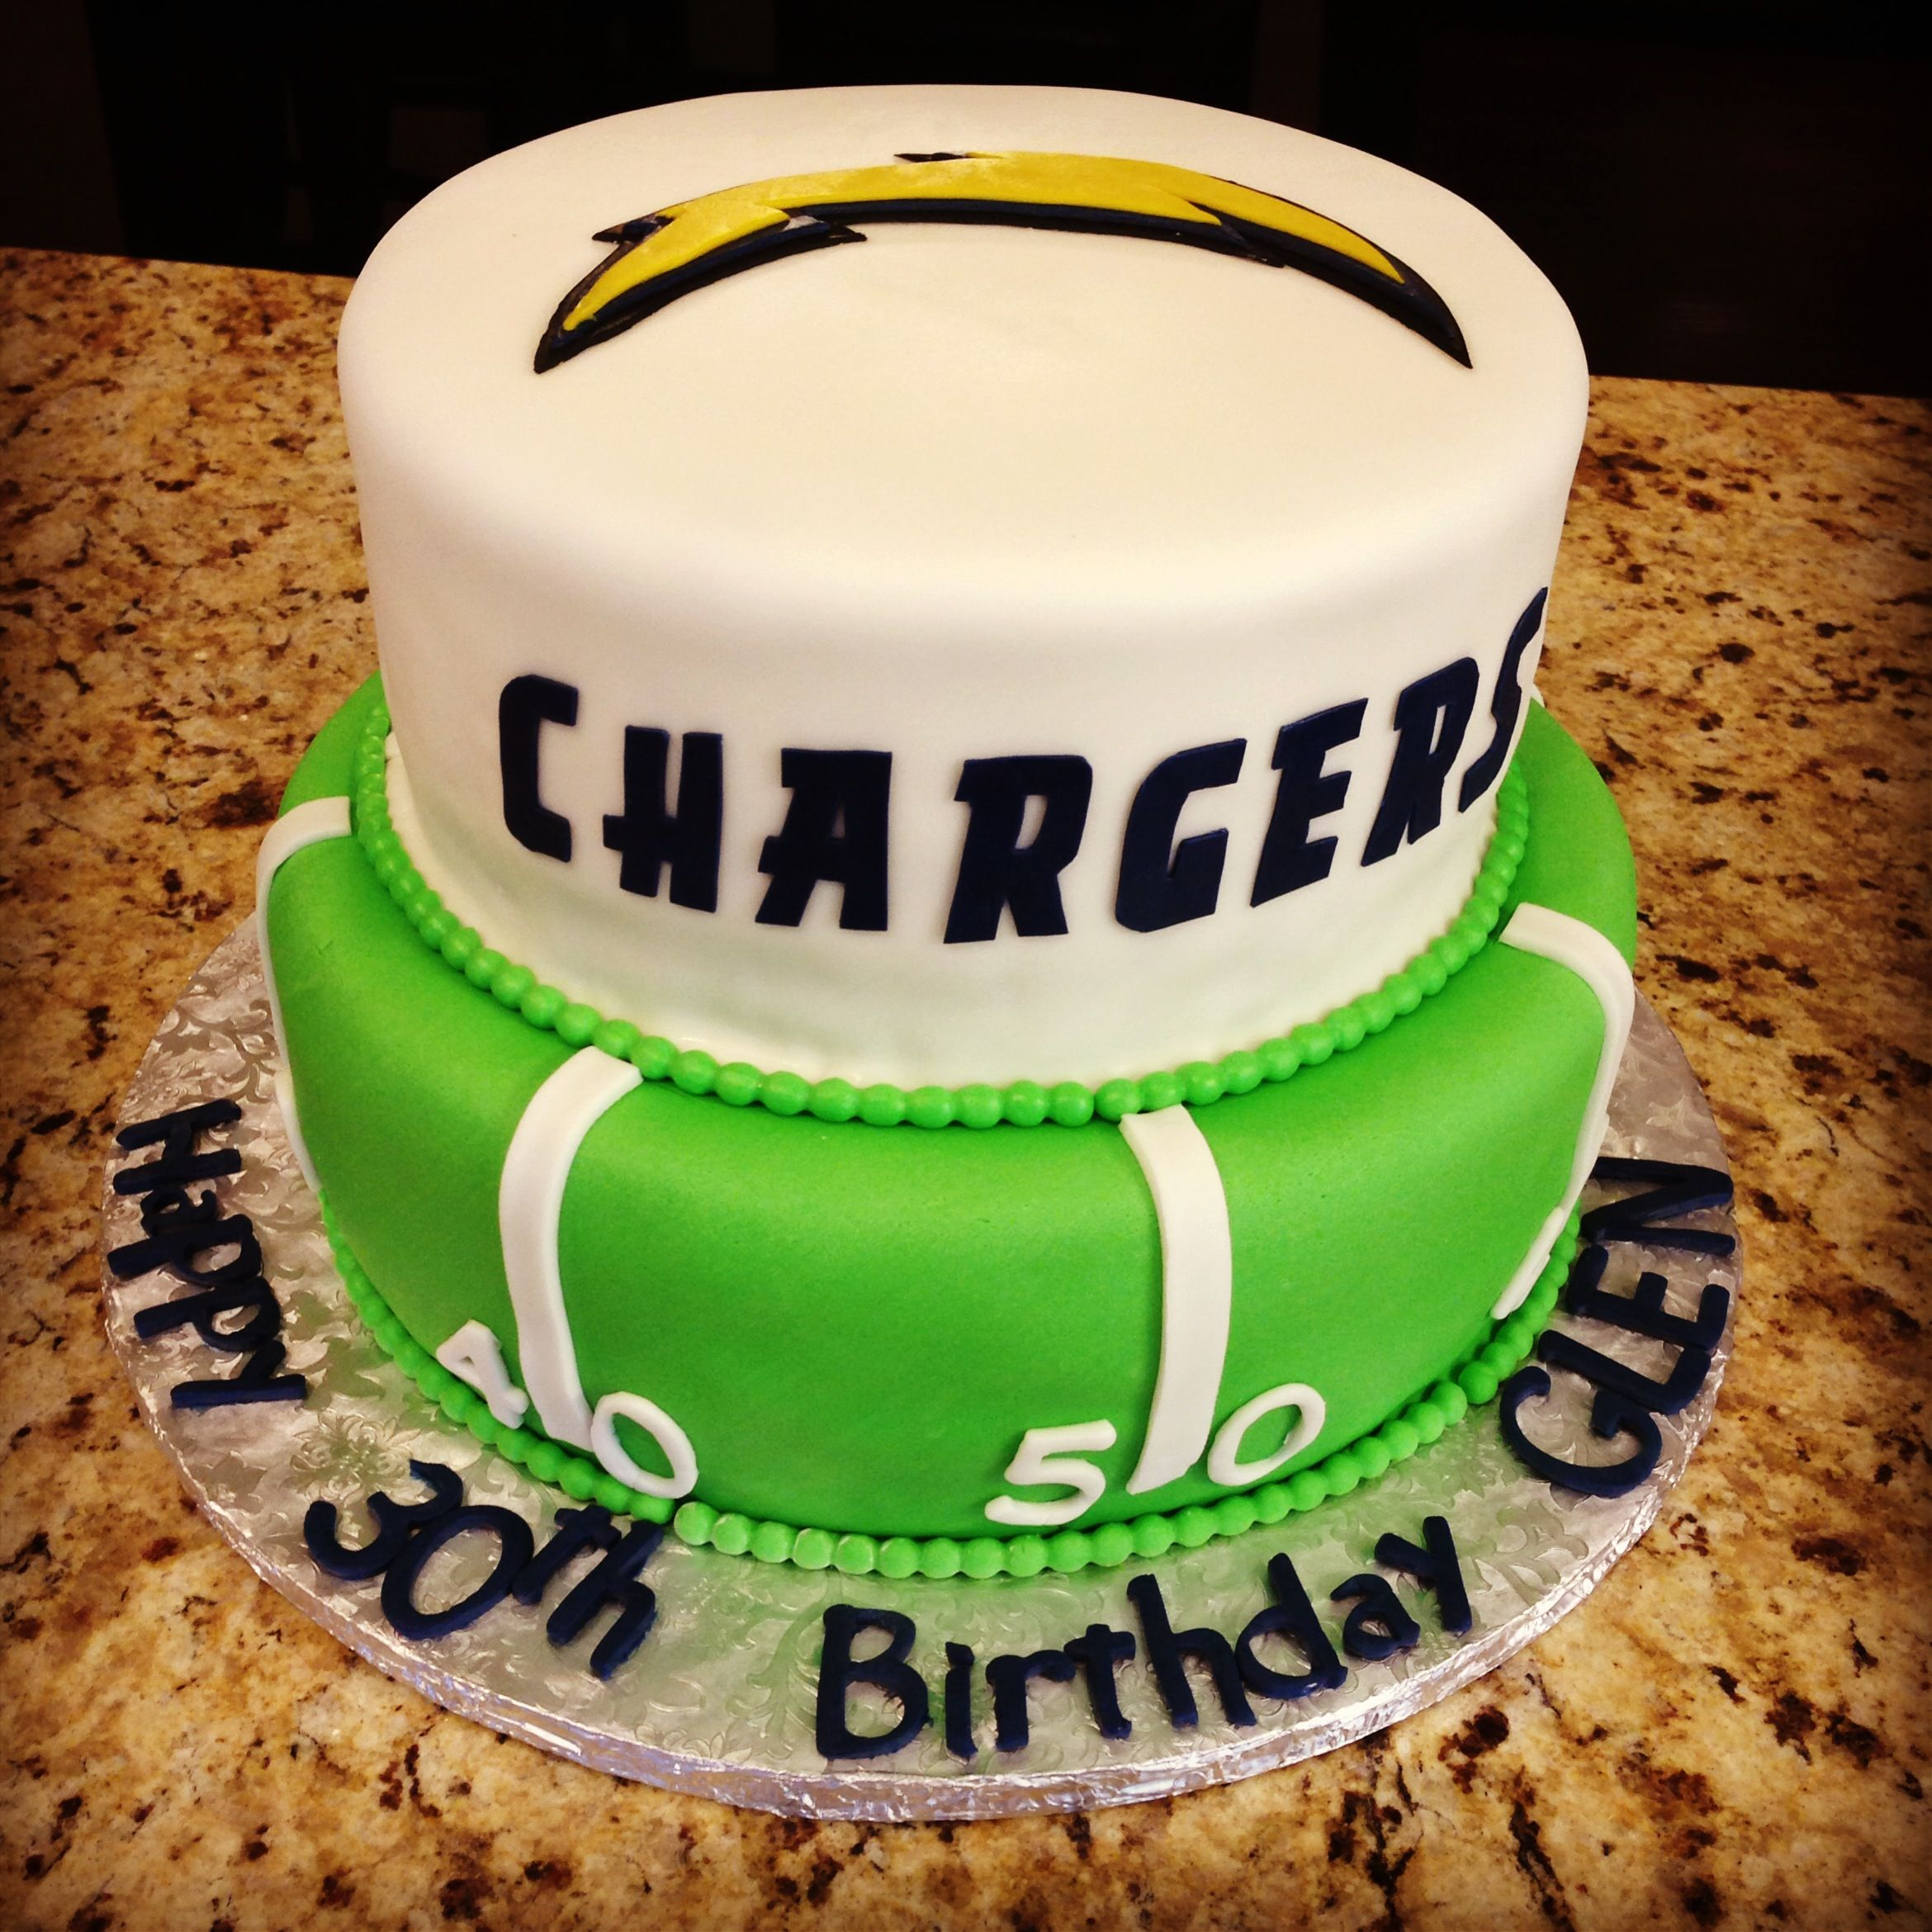 Chargers Cake desserts Pinterest Cake Creative cakes and